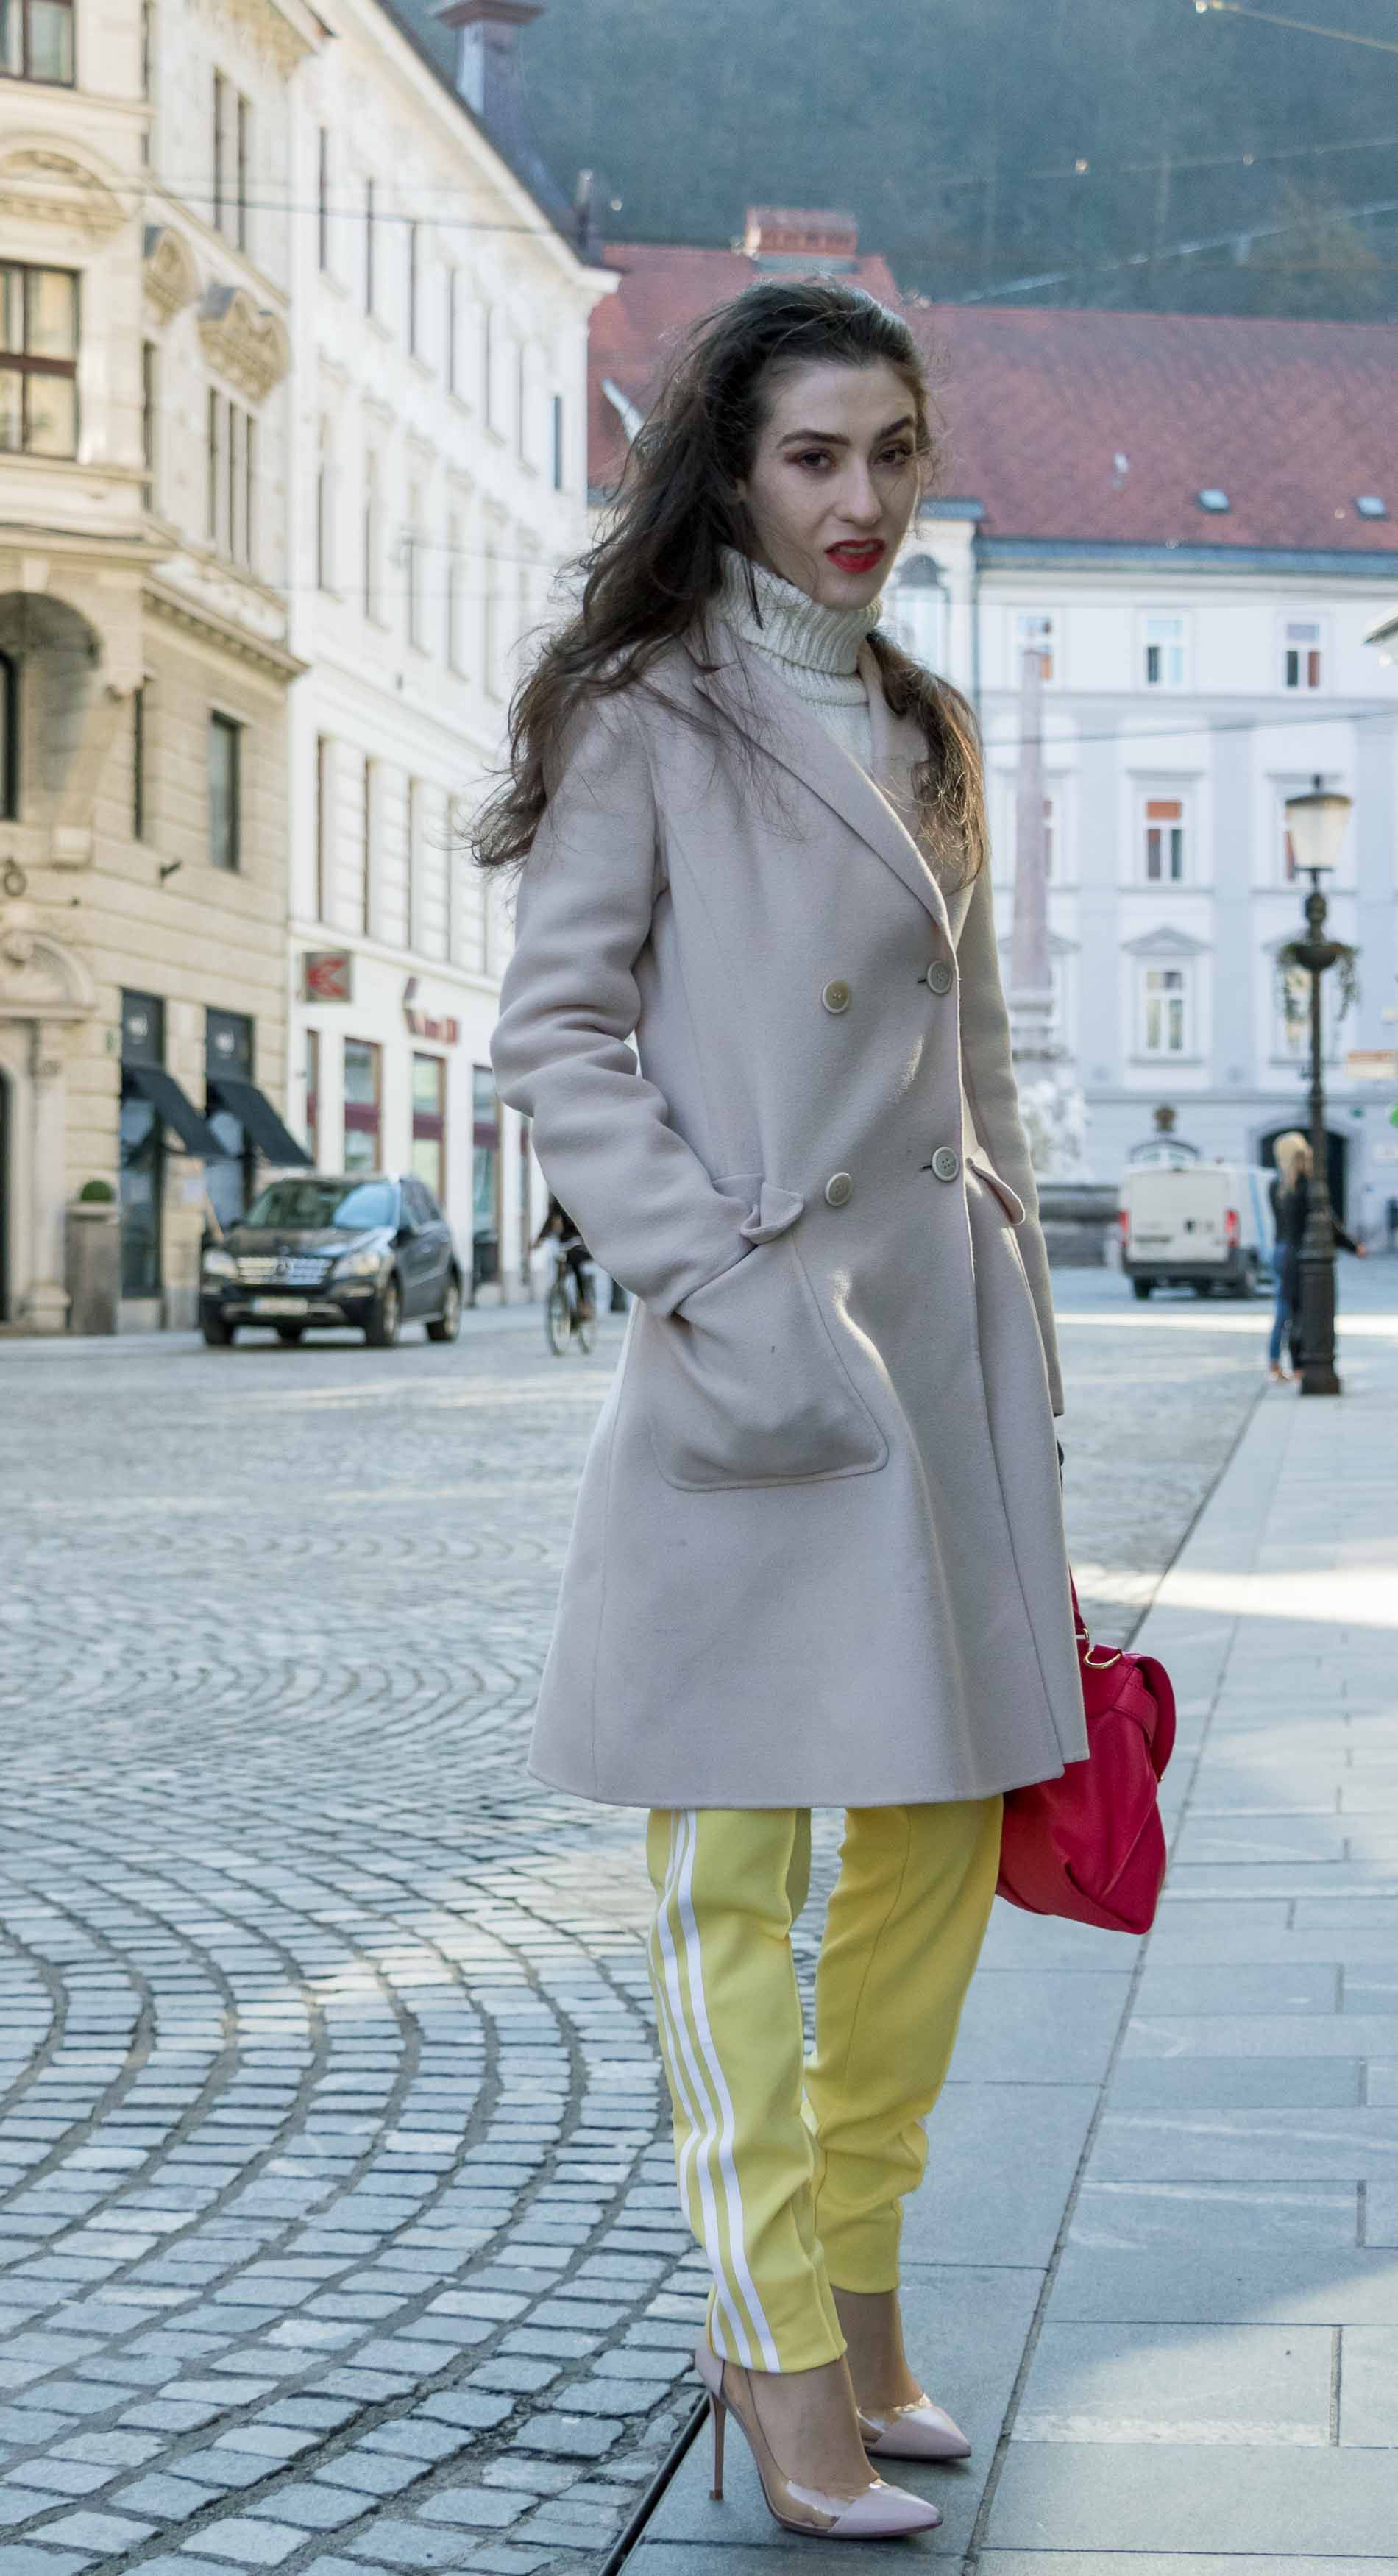 Fashion Blogger Veronika Lipar of Brunette from Wall Street wearing yellow track pants with white stripes from Adidas, white turtleneck knit sweater, off-white pastel double breasted coat from Weekend Max Mara, blush powder transparent plexi shoes from Gianvito Rossi, pink top handle bag from See by Chloe while standing on the street in Ljubljana